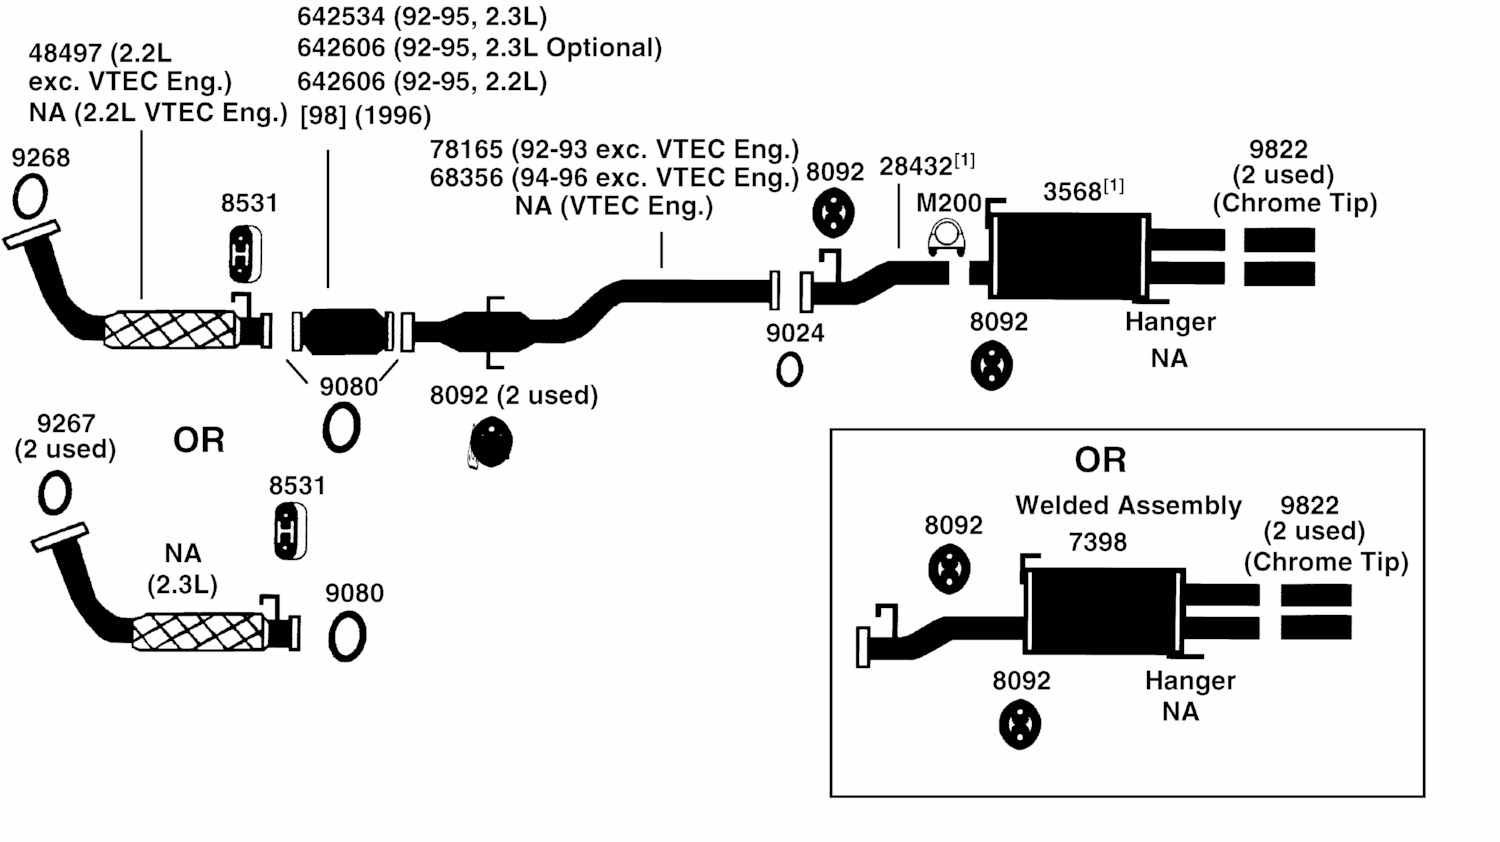 318565 It S Important Help Me furthermore Nissan Armada Fuel Pump Relay Location additionally 97 Honda Cr V Camshaft Position Sensor Location also Jeep Grand Cherokee 1999 2004 Fuse Box Diagram 397760 together with Hose Routing 78 Cj7 7190. on 2001 dodge grand caravan ecm location